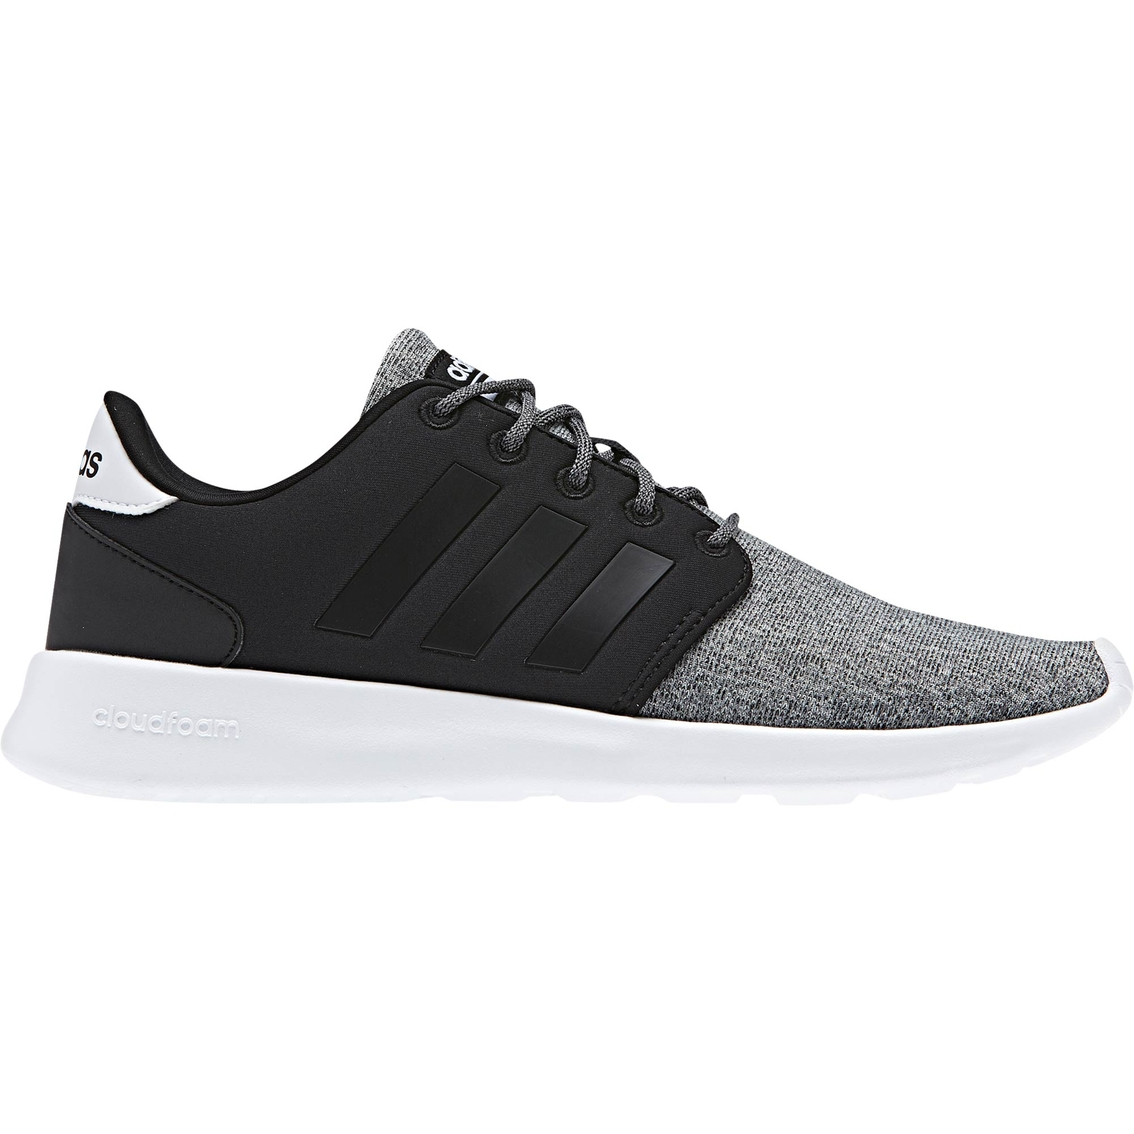 Adidas Women's Cloudfoam Qt Racer Shoes | Sneakers | Shoes